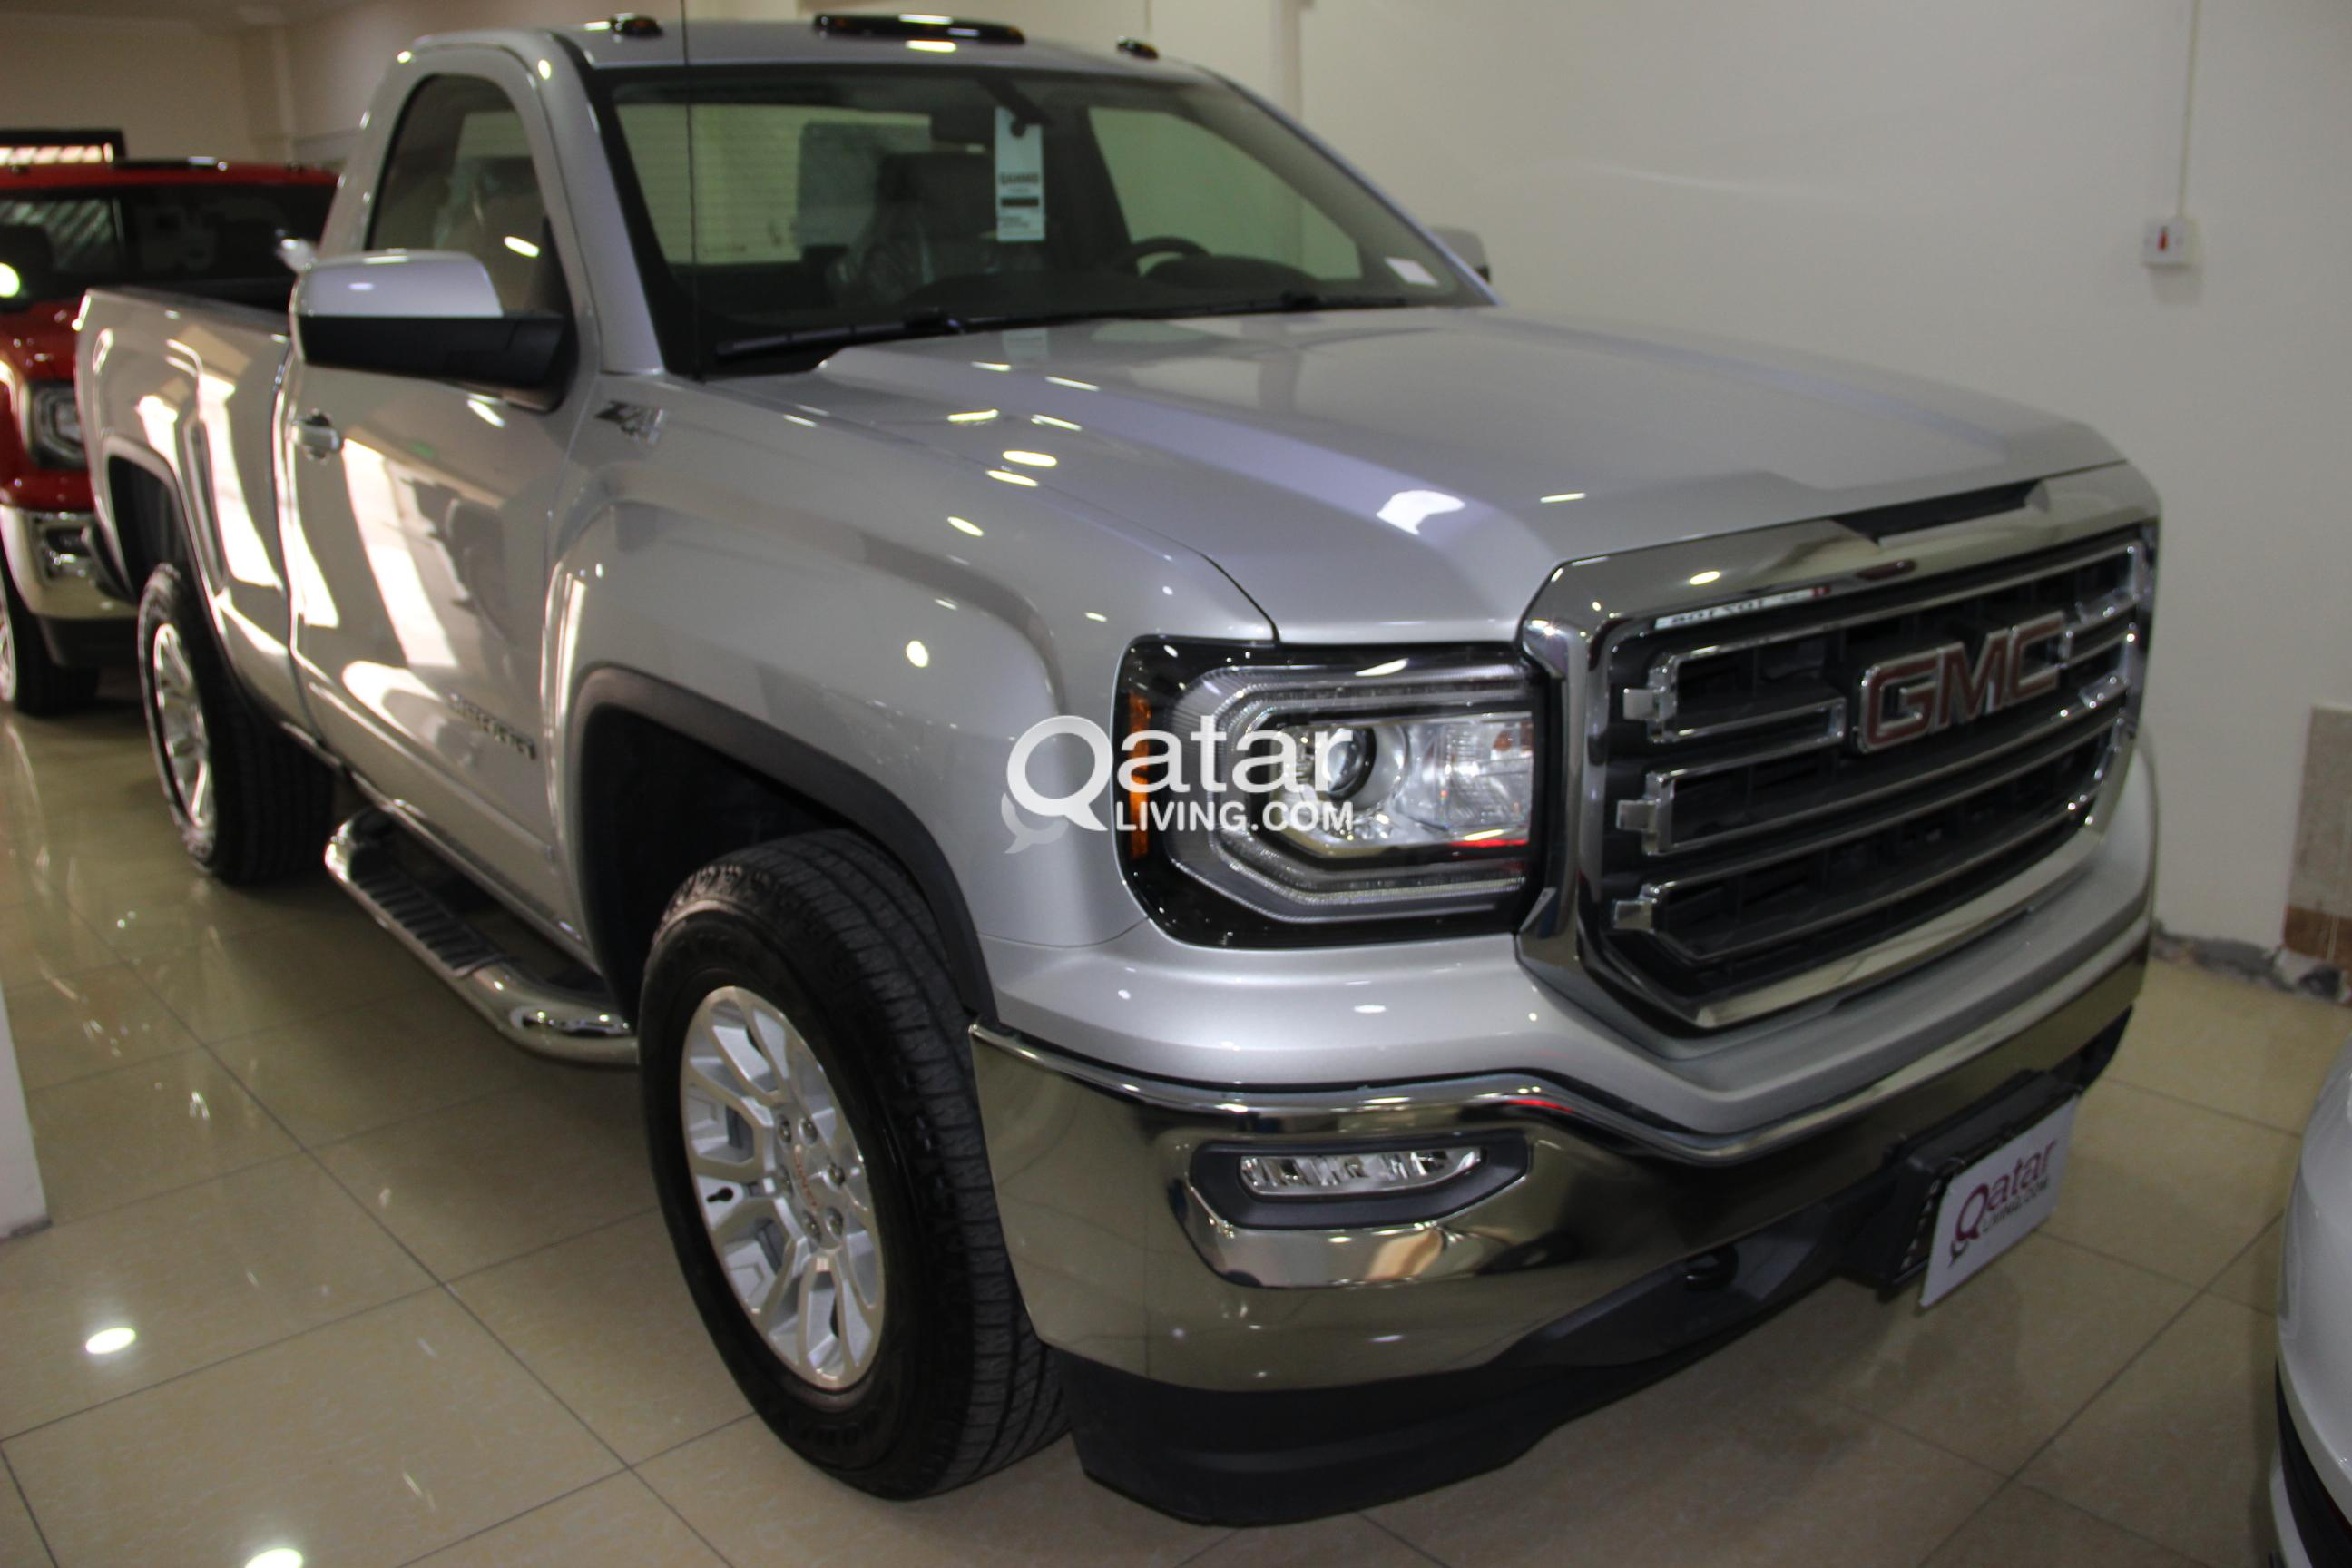 Information Vehicle Make Gmc Model Sierra Trim Sle Year 2017